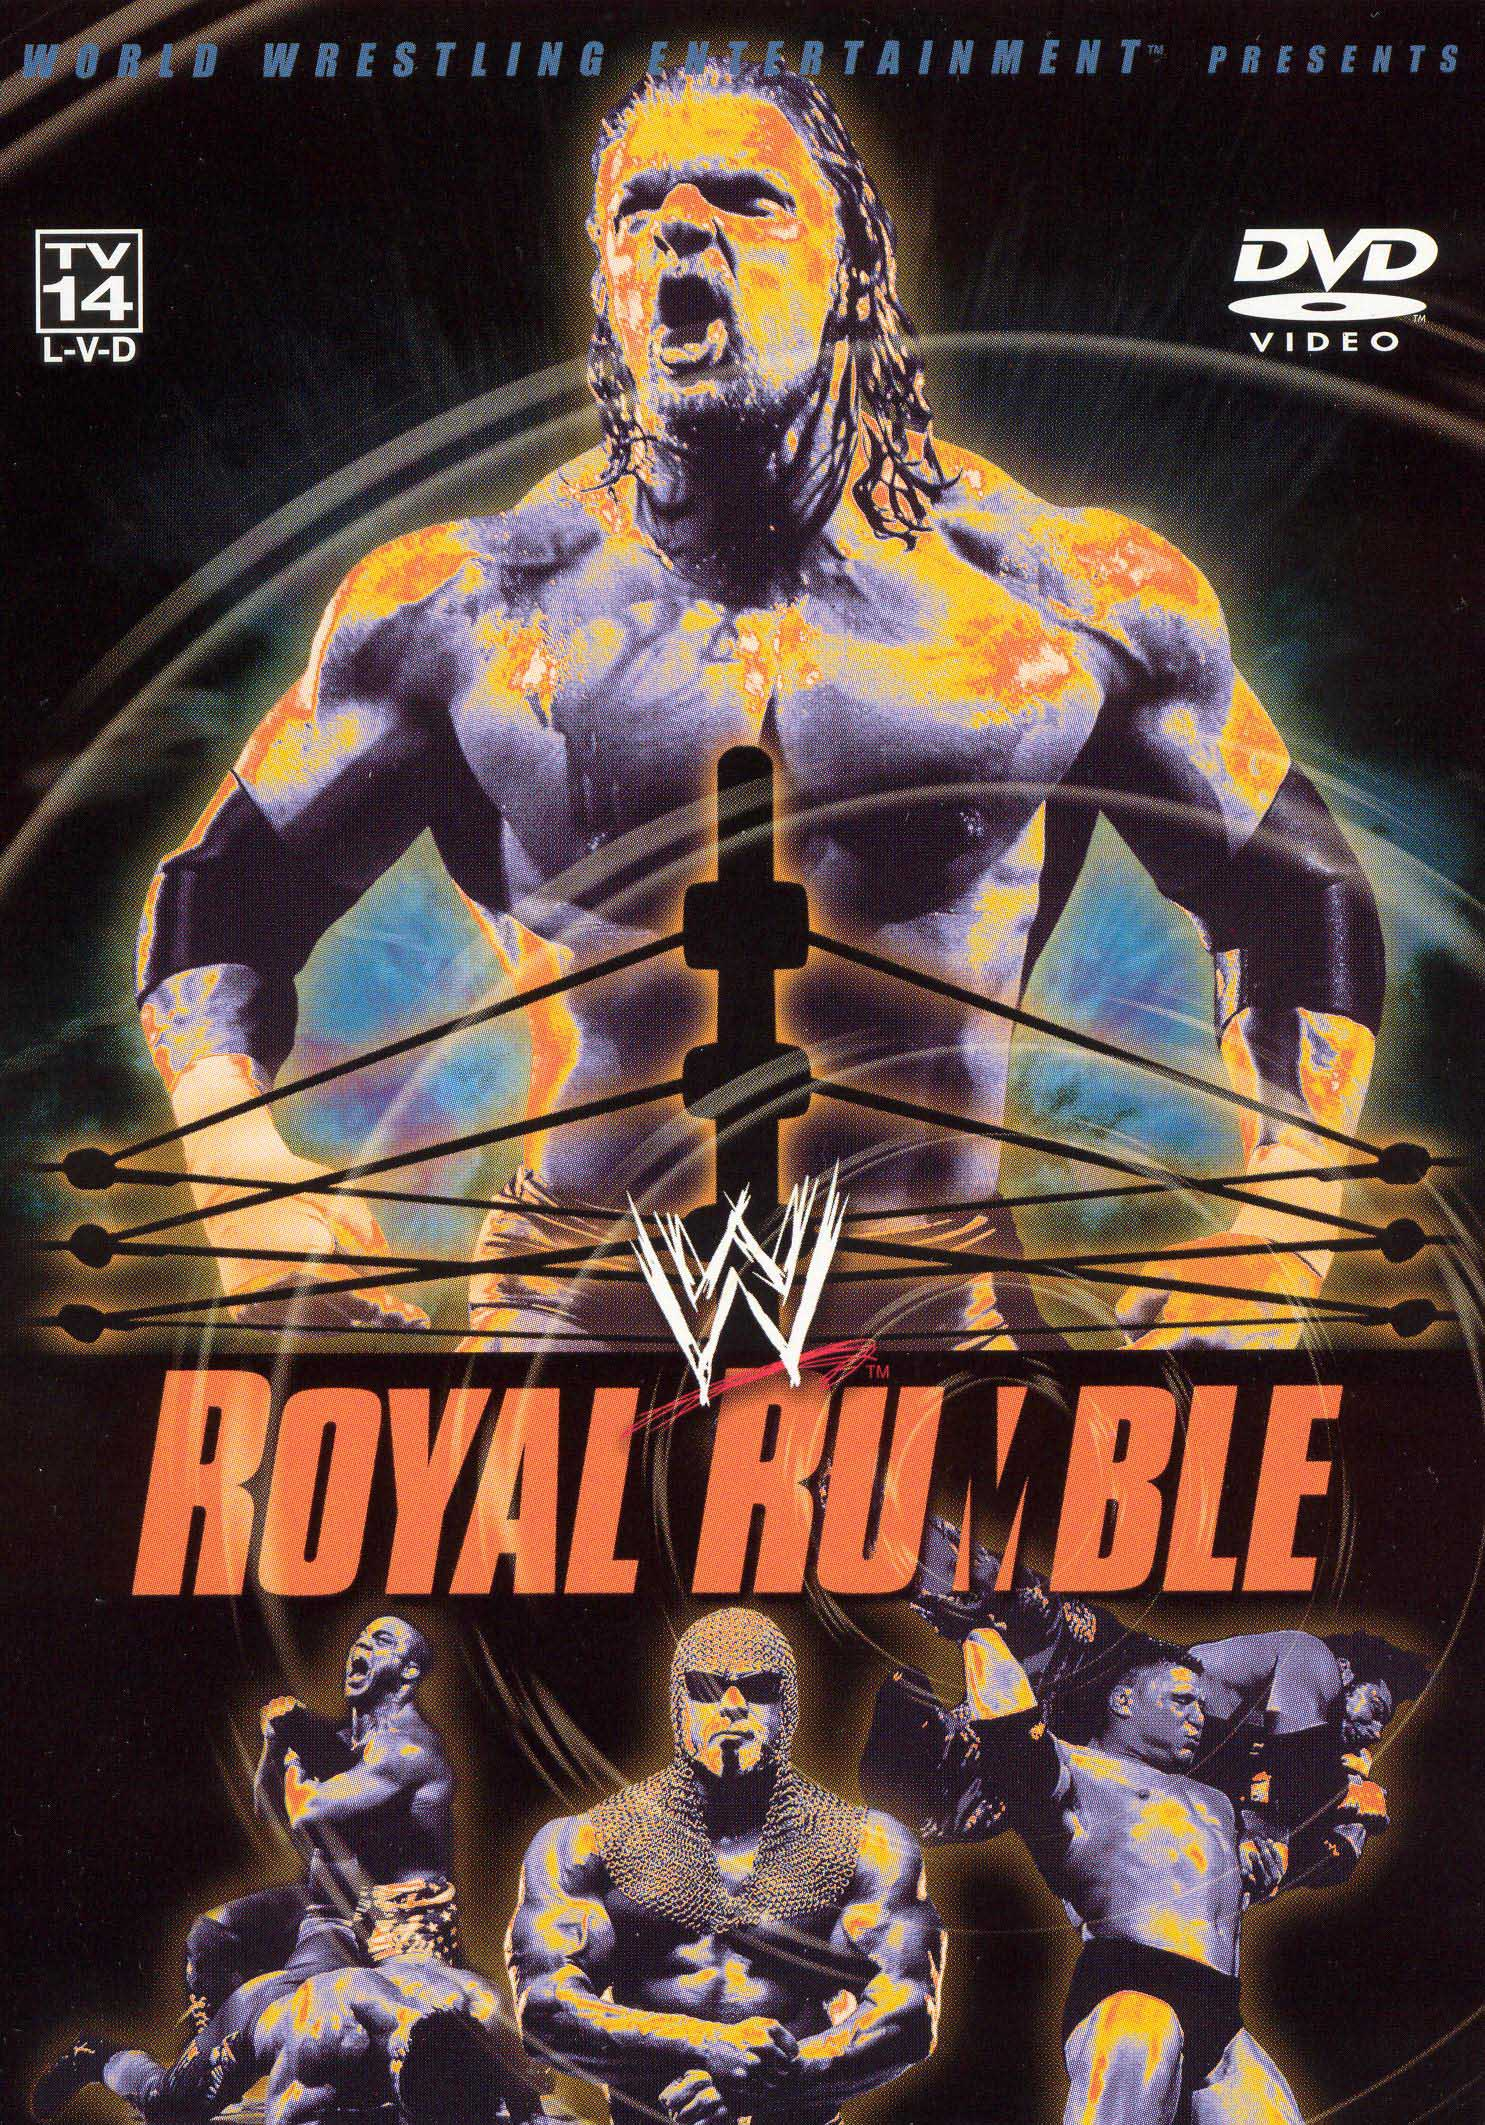 WWE: Royal Rumble 2003